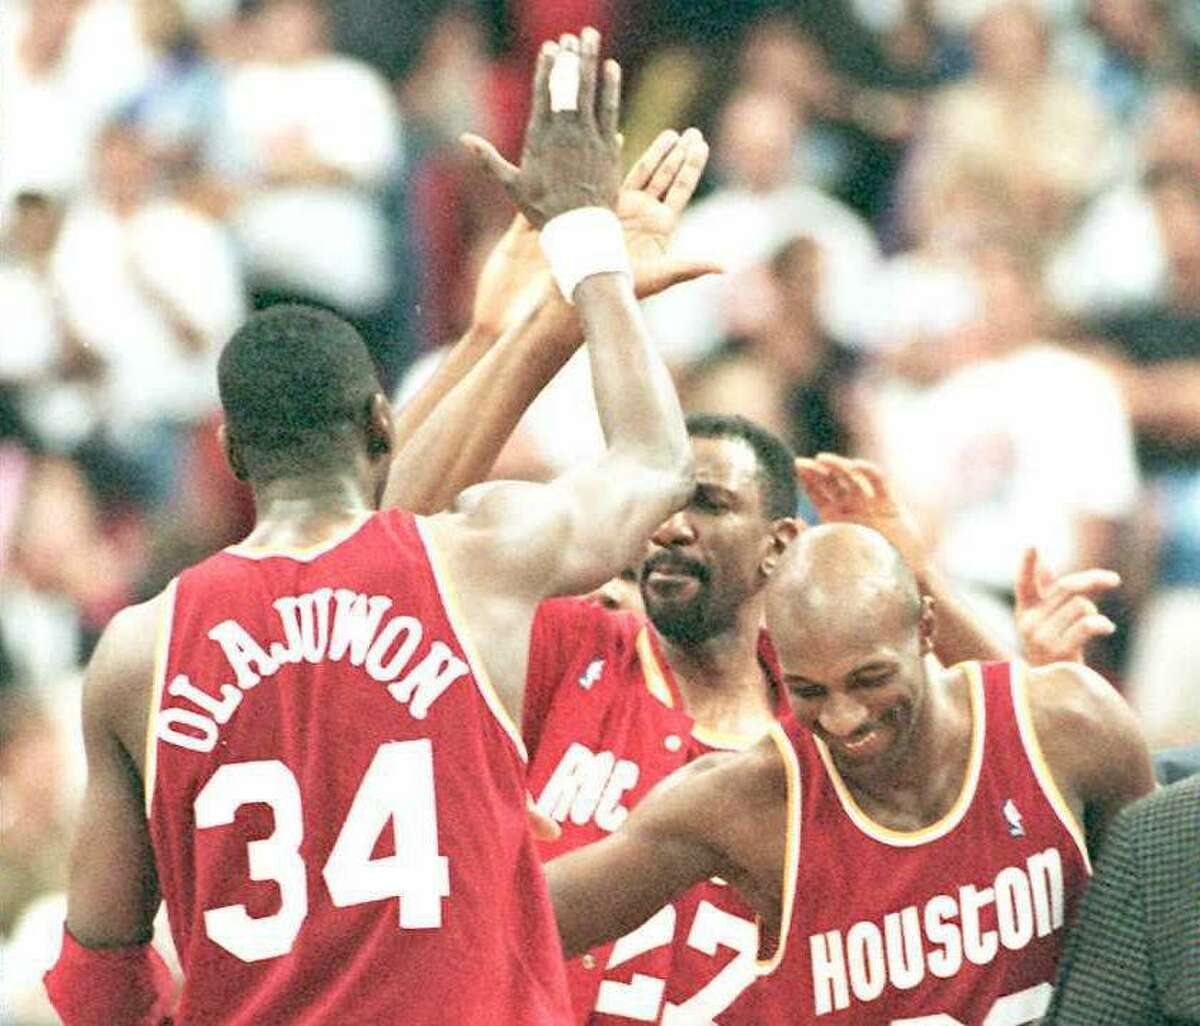 The Rockets' Hakeem Olajuwon gets congratulated by teammates Clyde Drexler (right) and Charles Jones (center) after hitting the game-winning shot in Game 1 of the 1995 NBA Finals on June 7, 1995 in Orlando. The Rockets defeated the Magic 120-118 in overtime.